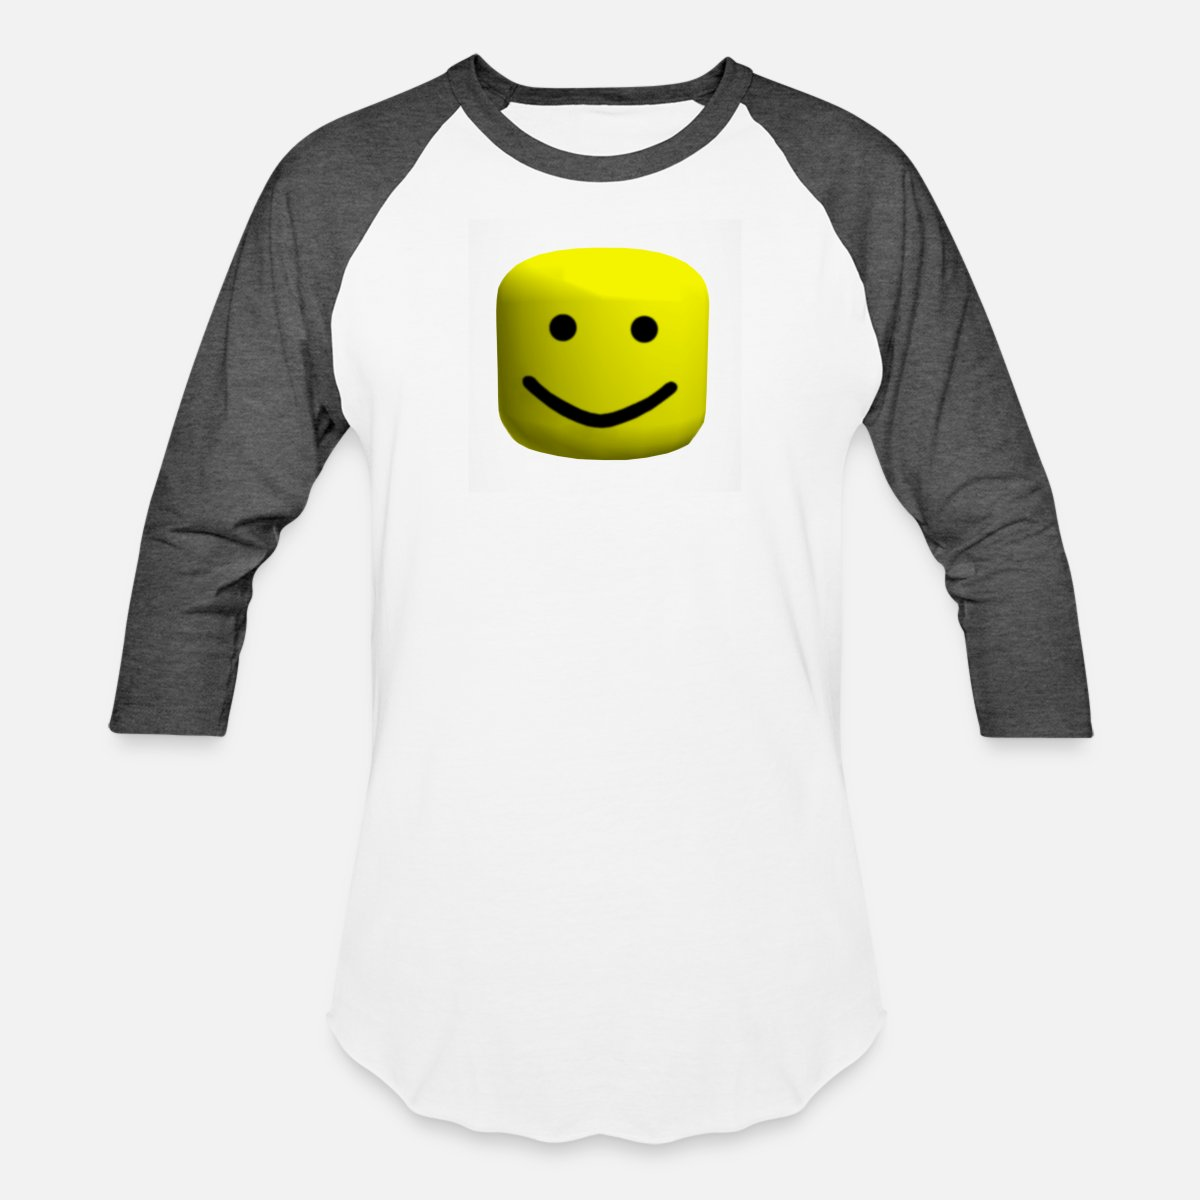 How To Make Really Good Shirts On Roblox Dreamworks